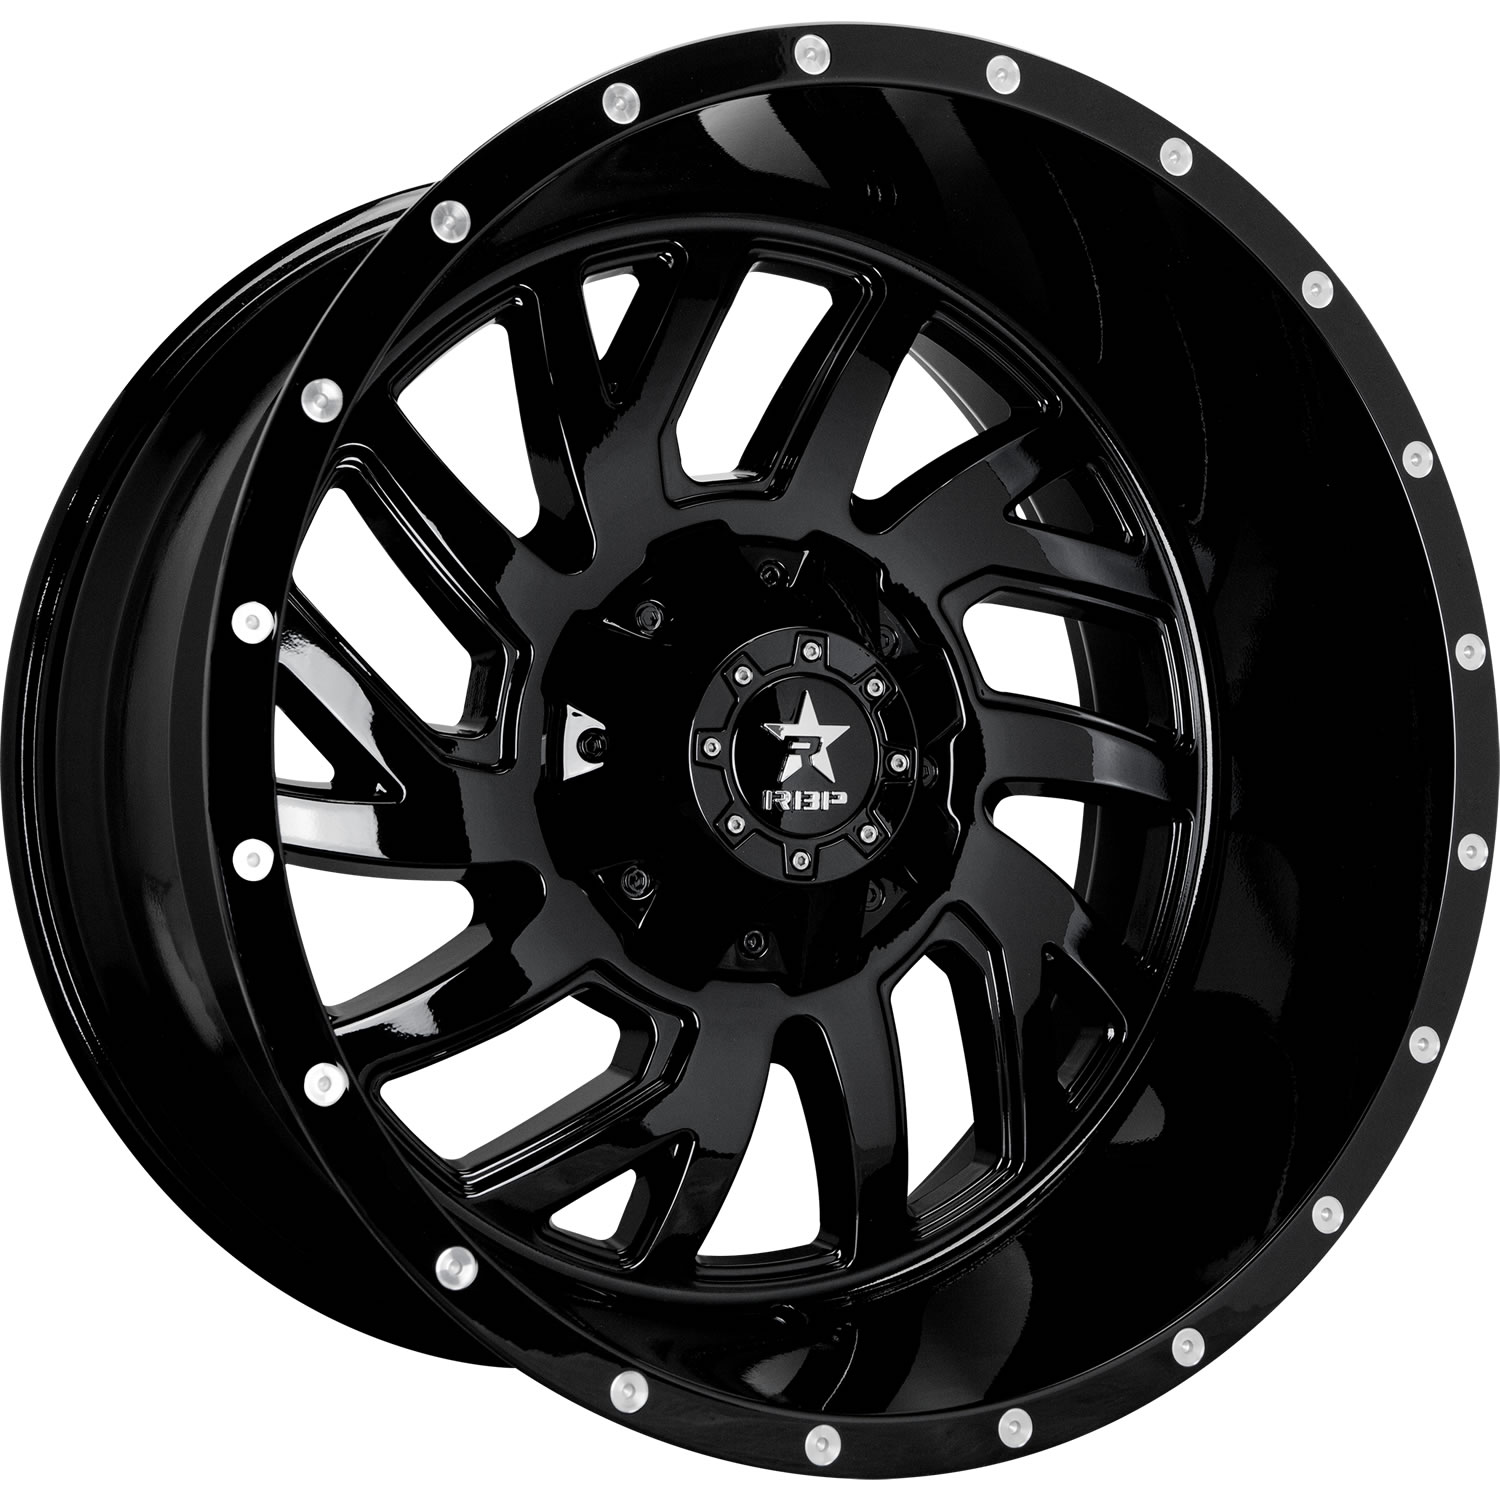 RBP 65R 20x12  44mm | 65R 2012 00 44FB